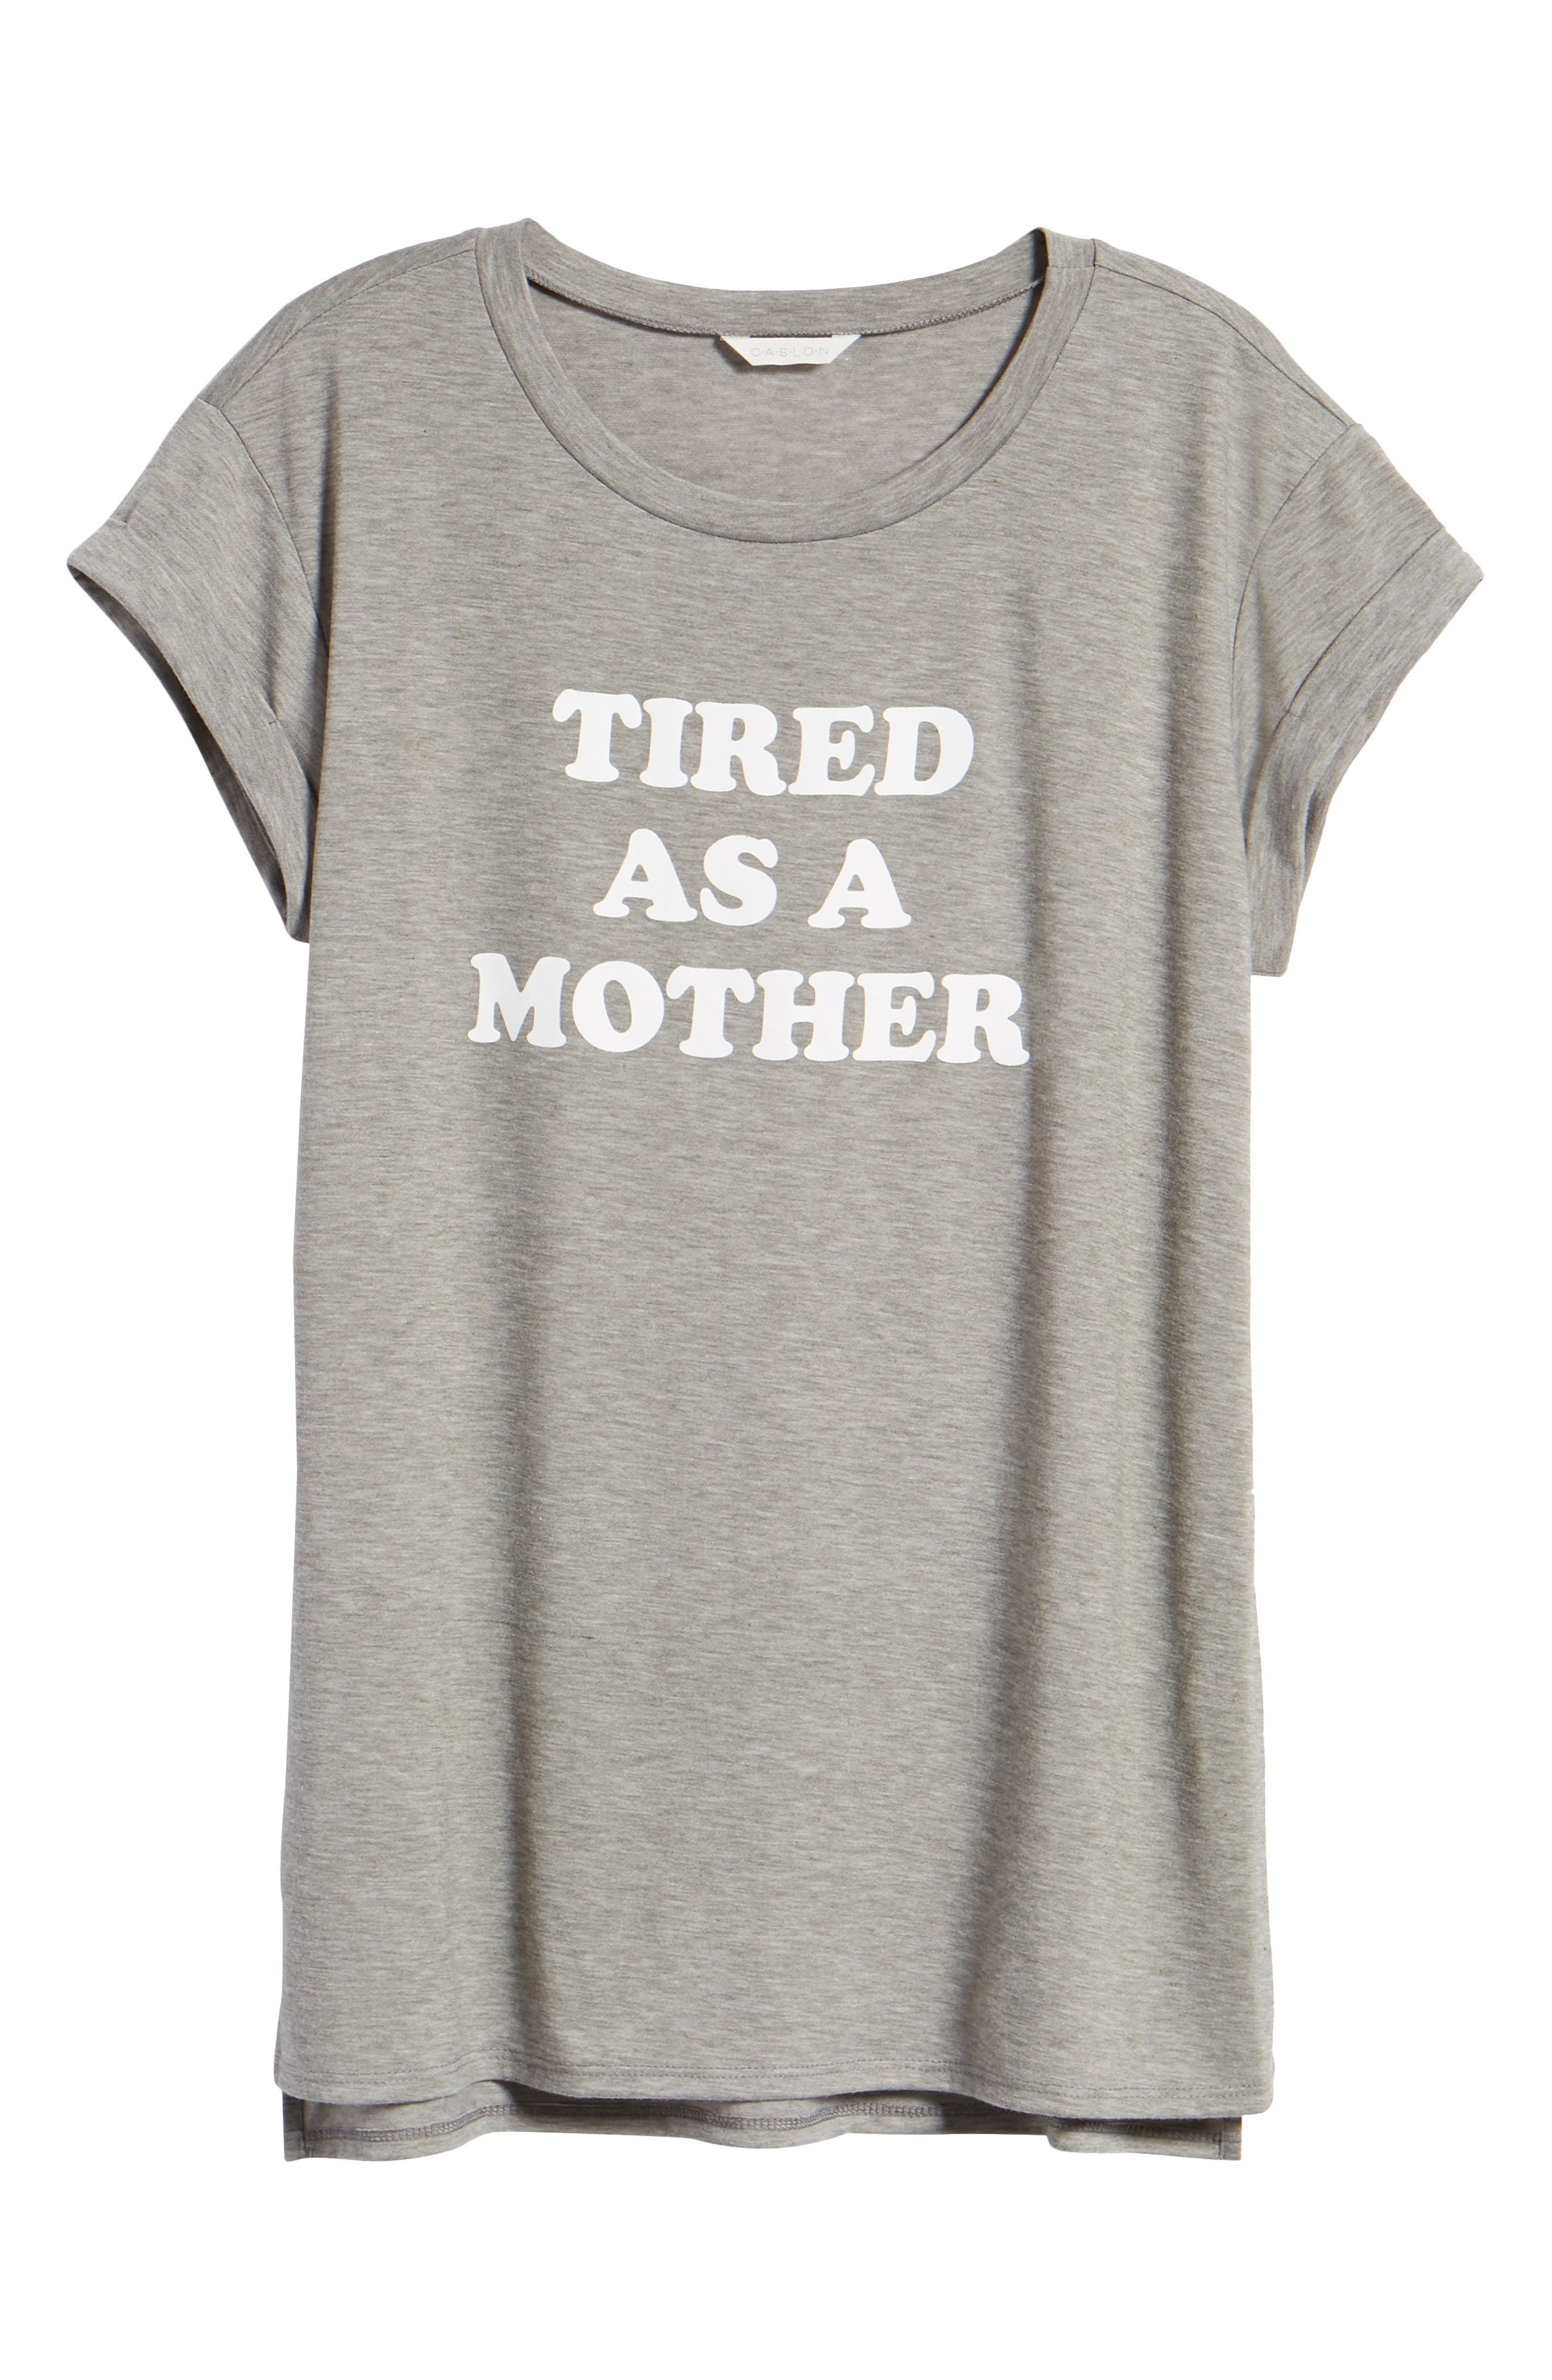 Off-Duty Mother Tee,                             Alternate thumbnail 7, color,                             030